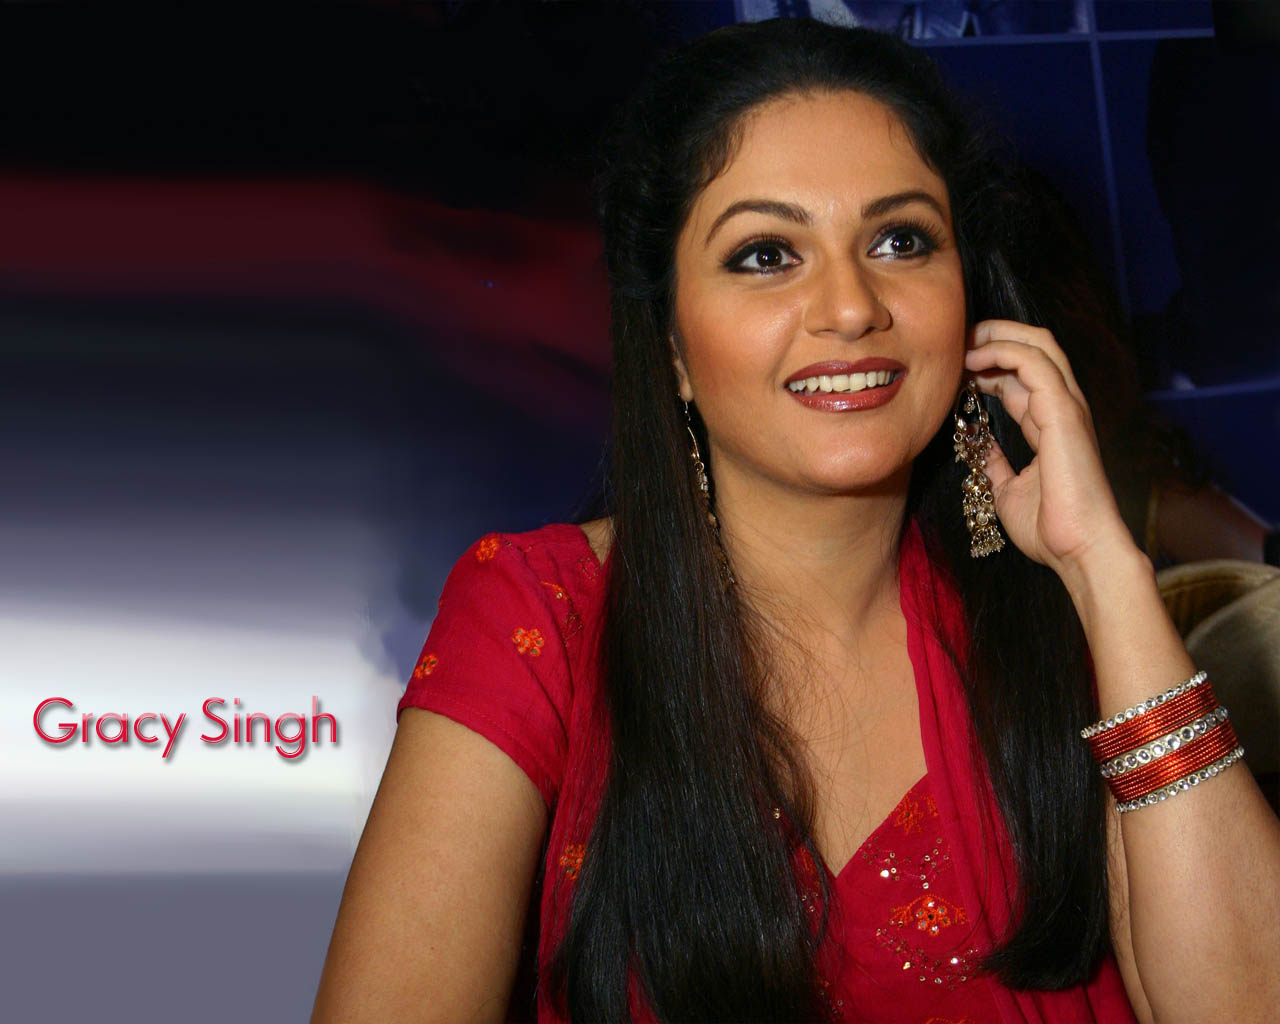 Fashionewallpaperblogspotcom Gracy Singh Wallpapers -2634